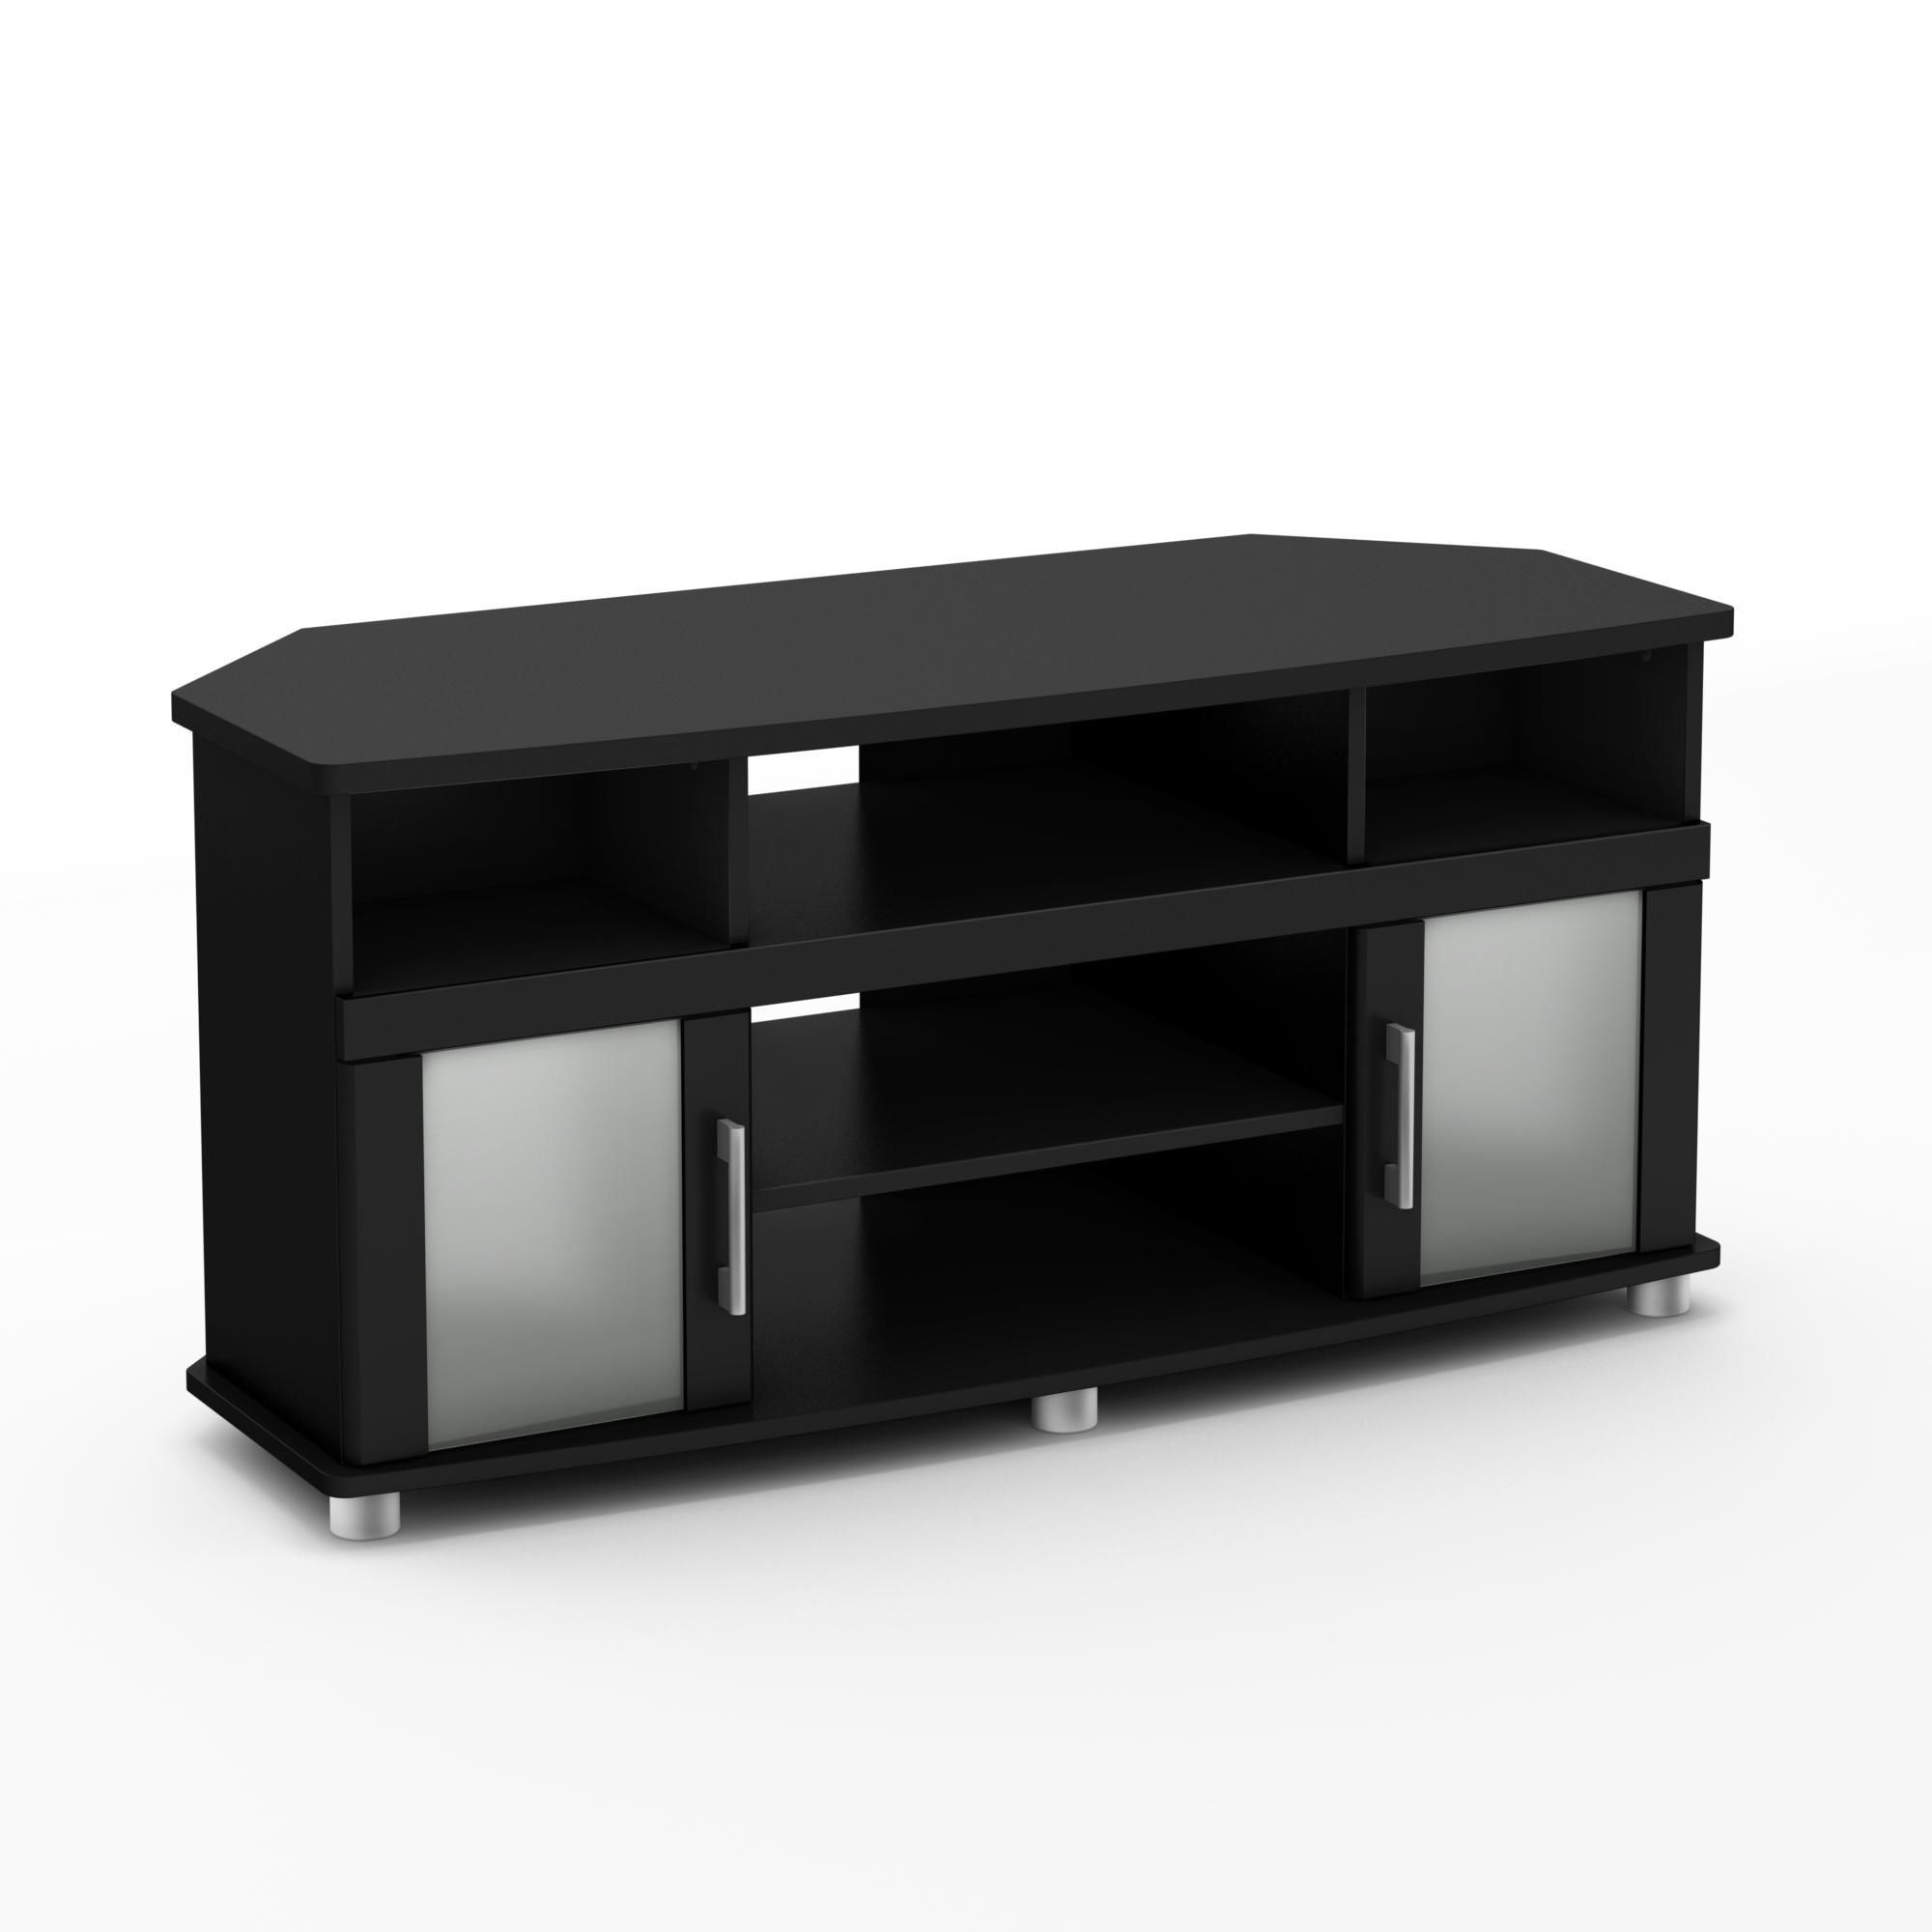 Tv Stands With Rounded Corners Inside Most Popular South Shore City Life Corner Tv Stand, For Tvs Up To 50 Inches (View 15 of 20)